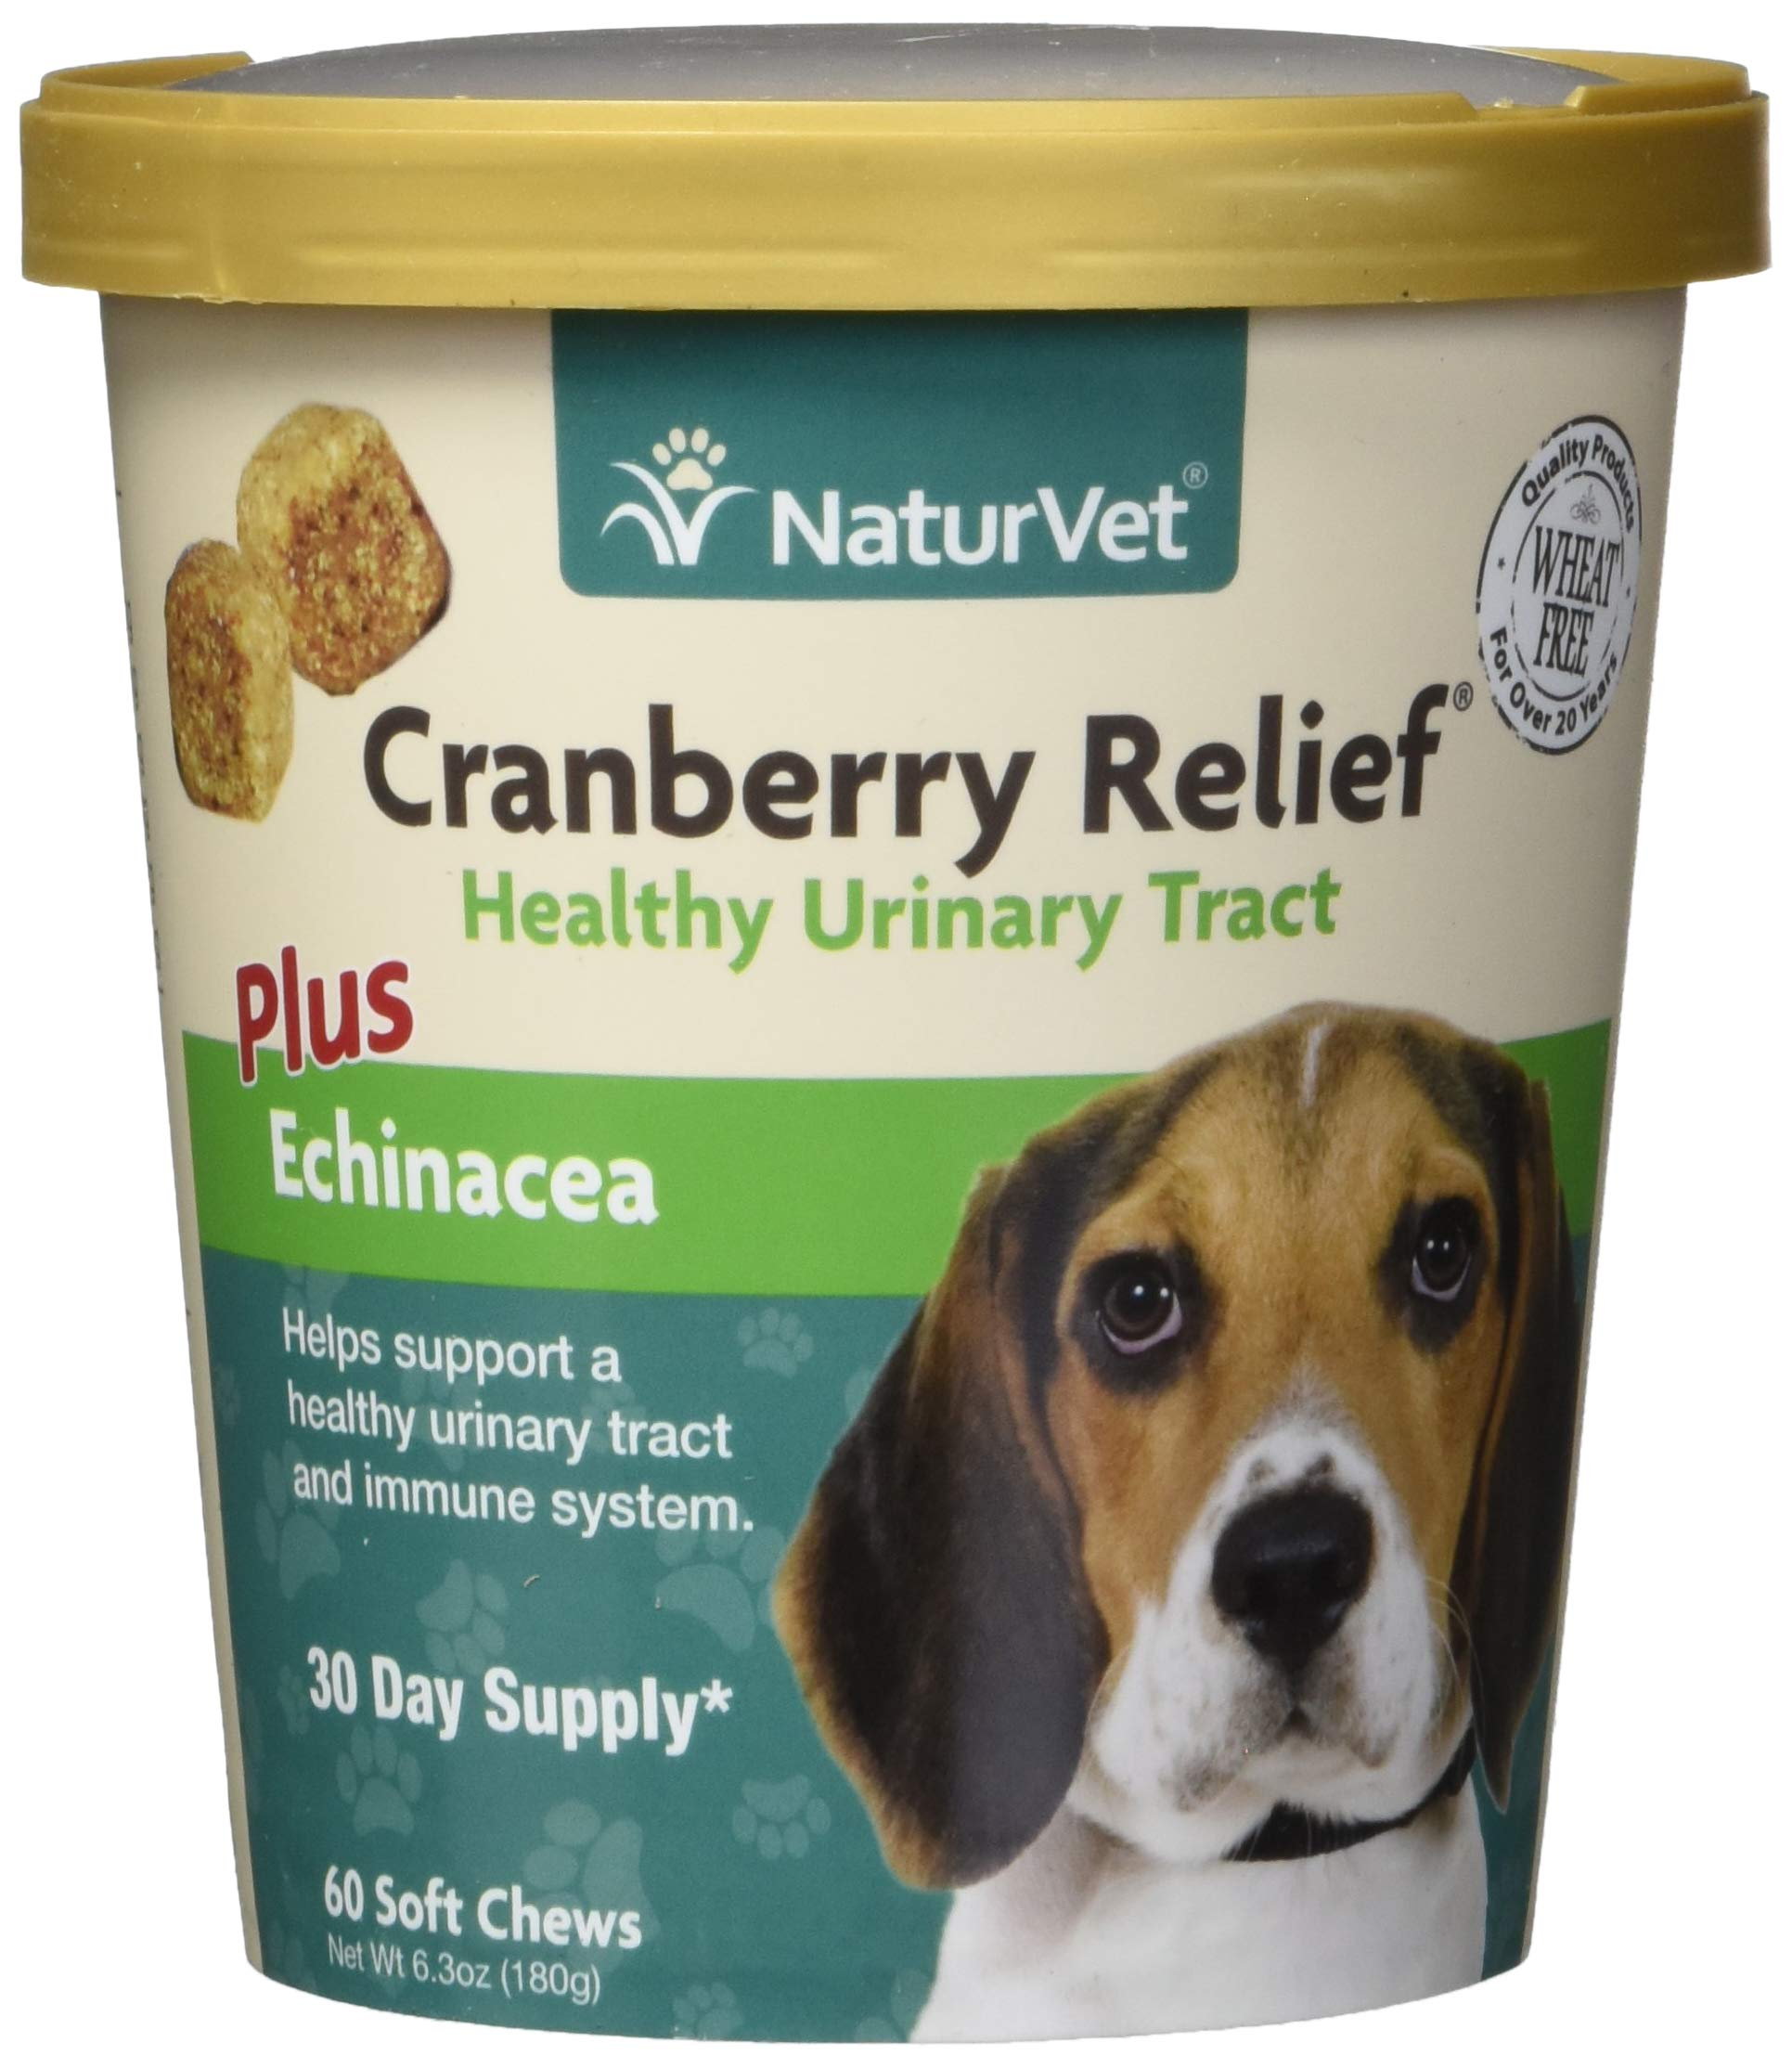 NaturVet - Cranberry Relief Plus Echinacea - Helps Support a Healthy Urinary Tract & Immune System - 60 Soft Chews by NaturVet